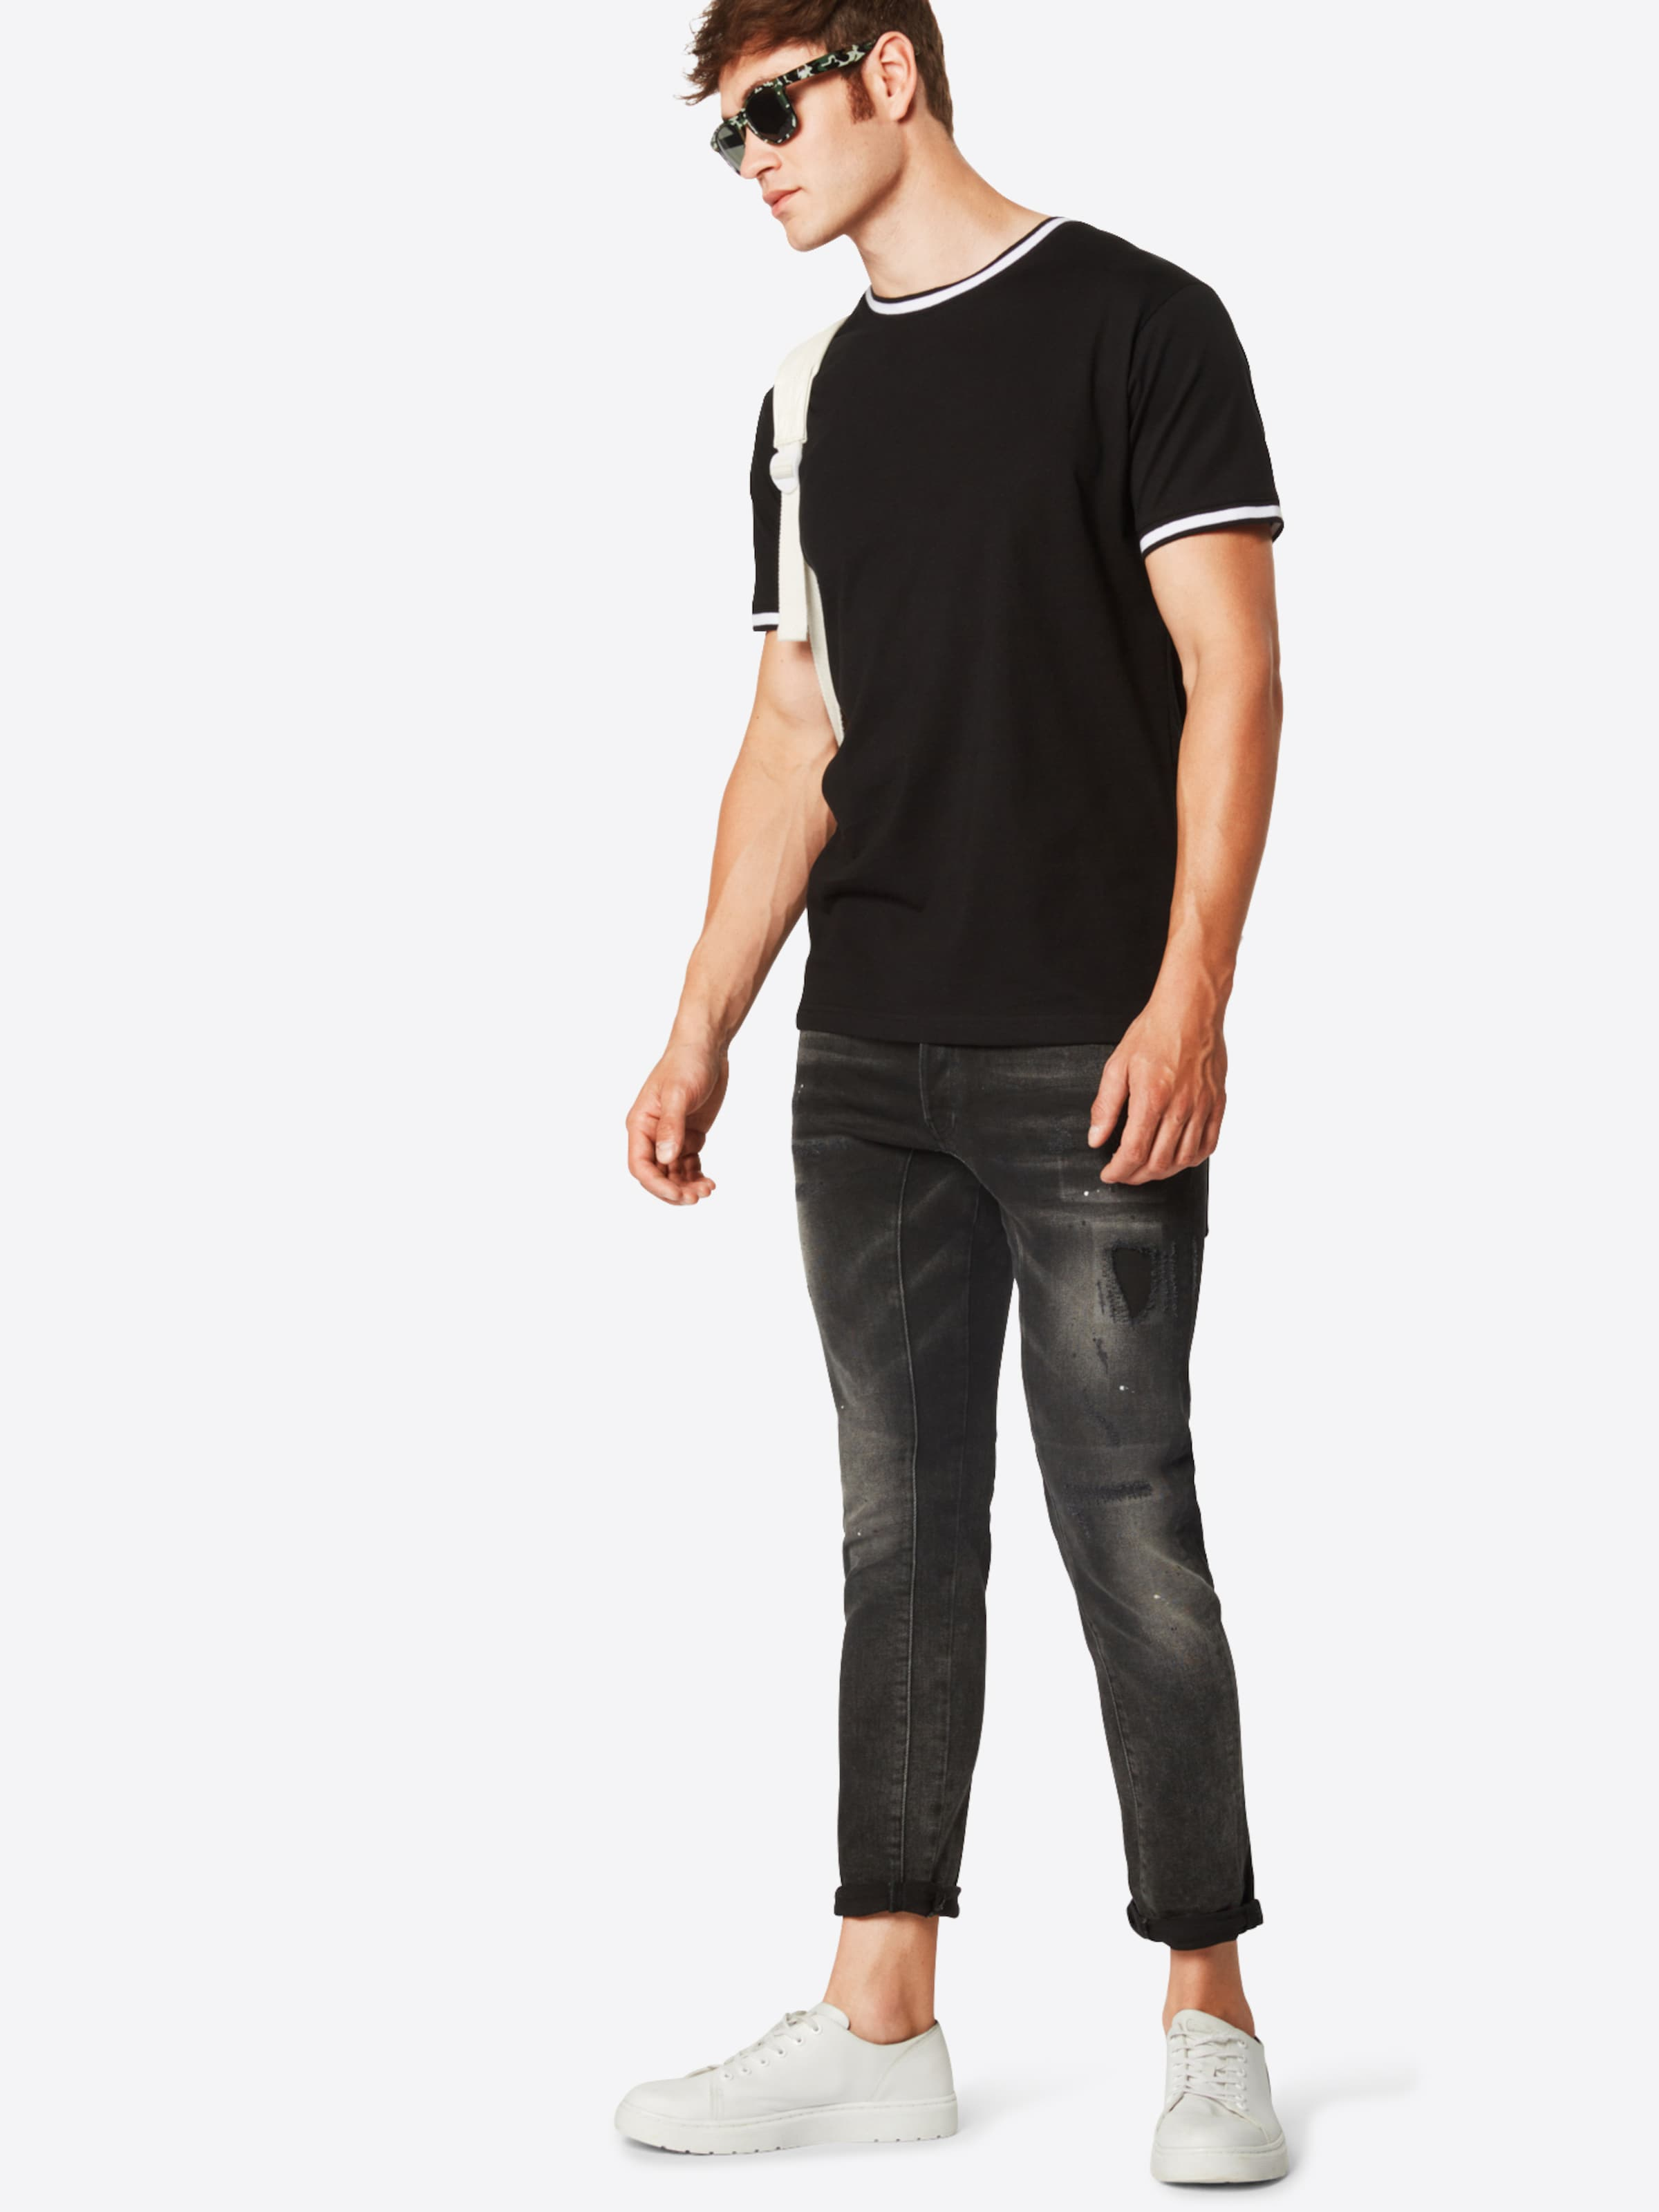 'collage shirt En T Urban Classics Pocket Tee' NoirBlanc ARj4Lqc35